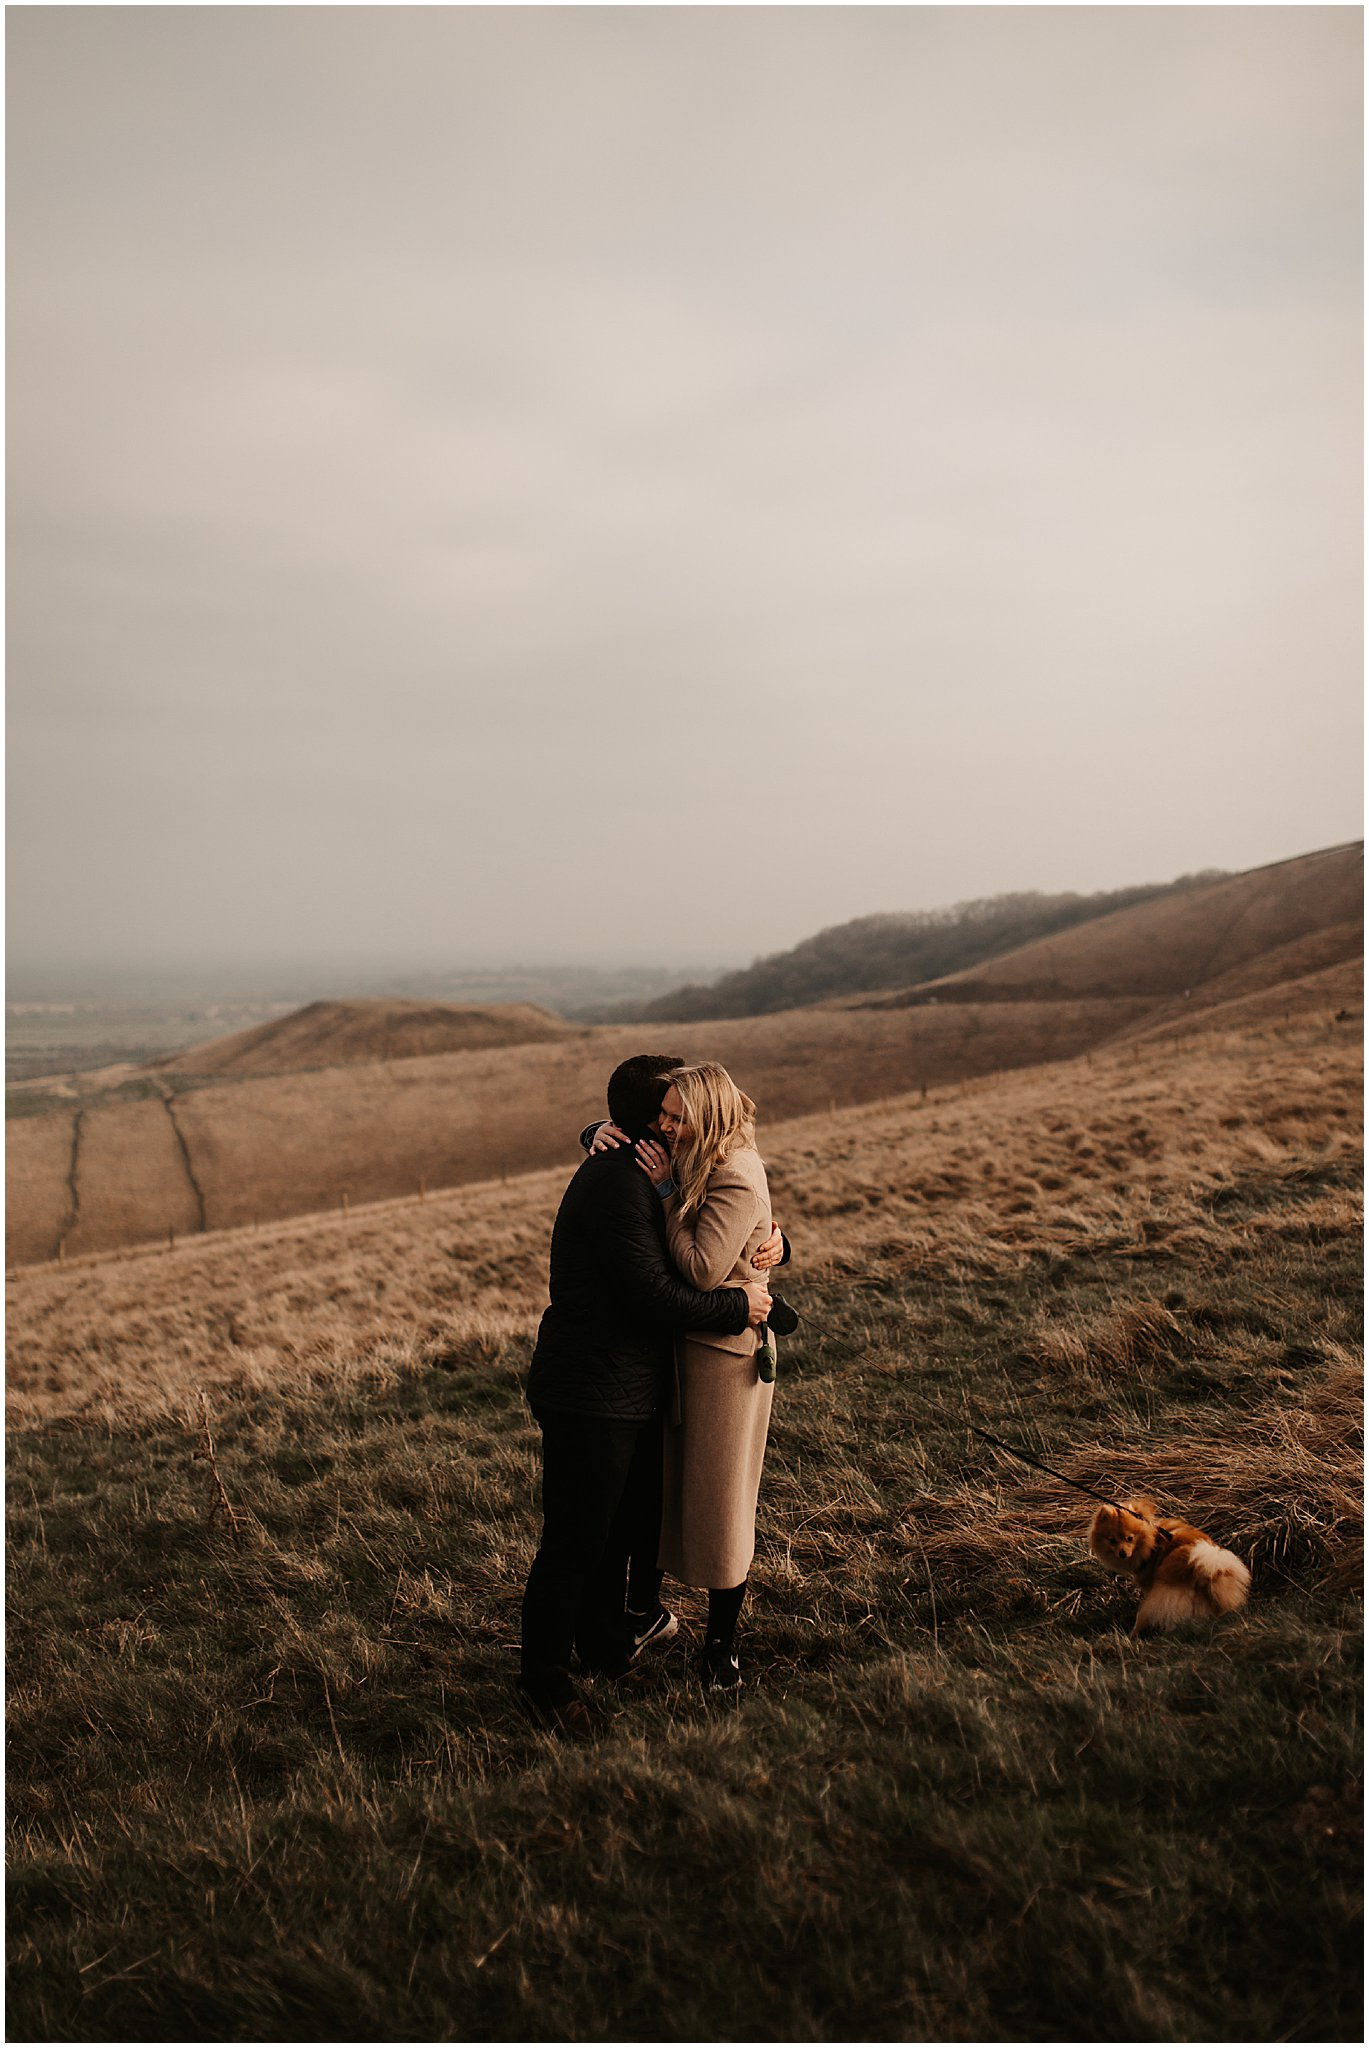 Mike & Charley_s Winter Engagement Shoot Wiltshire-153.jpg